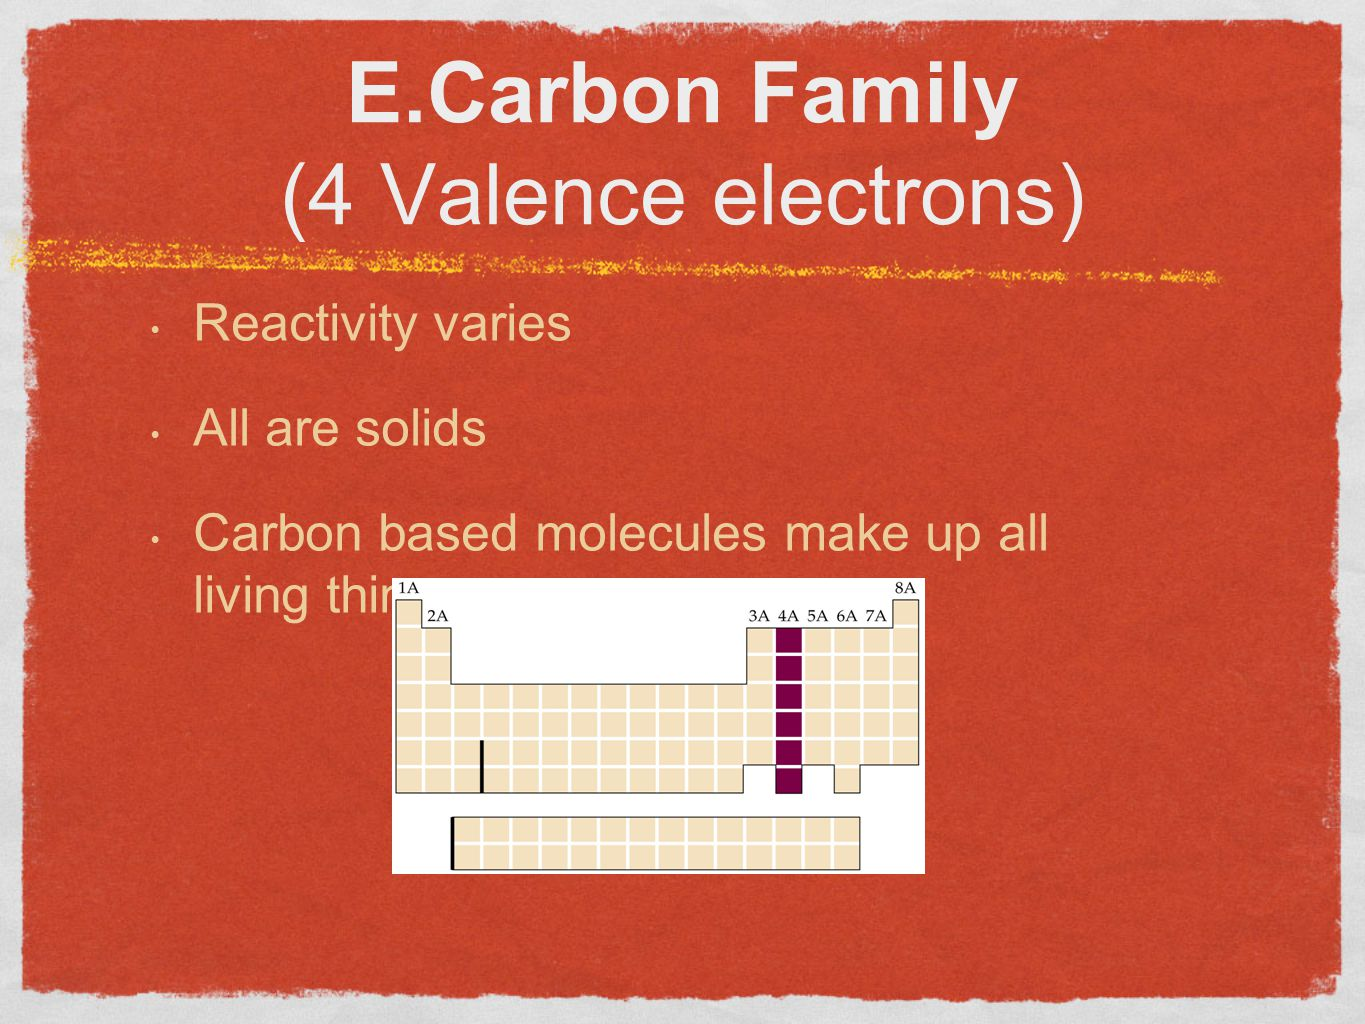 Carbon family periodic table gallery periodic table images periodic table carbon family image collections periodic table images periodic table boron family gallery periodic table gamestrikefo Images